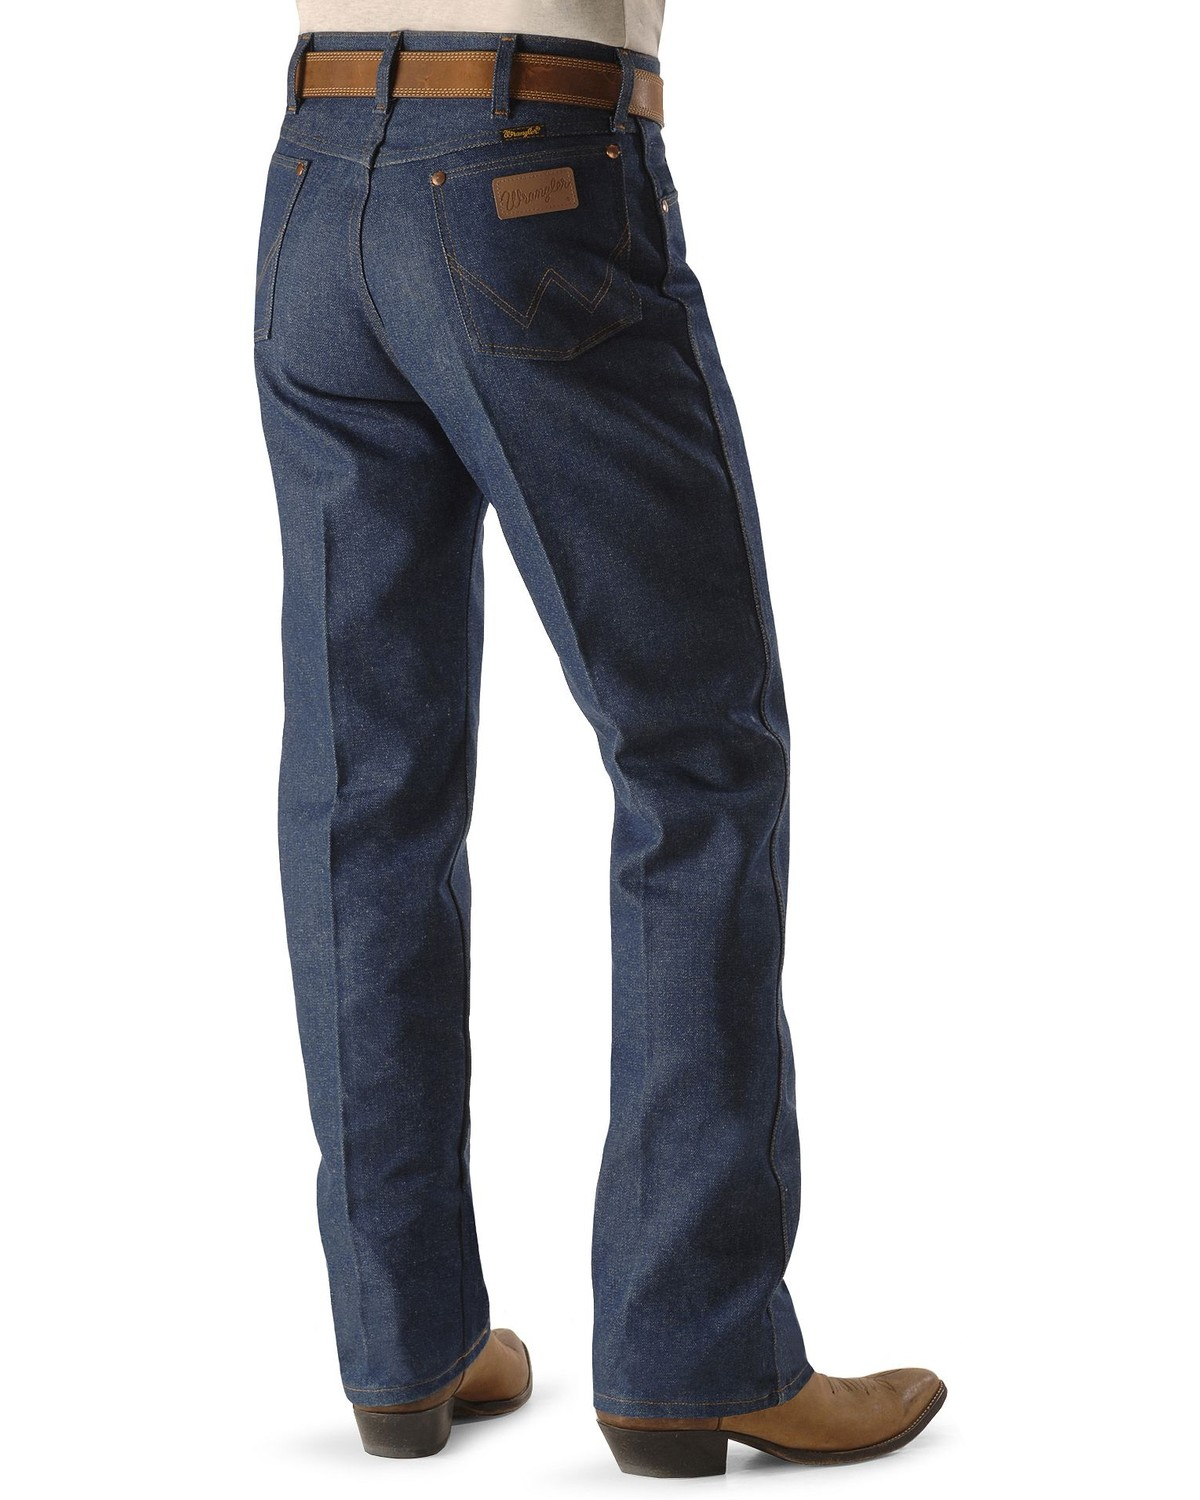 Browse all jeans on sale at Levi's® and find discounts on many styles of jeans and clothing. Shop the best place to find Levi's® jeans on sale now. Shop the best place to find Levi's® jeans on sale now.